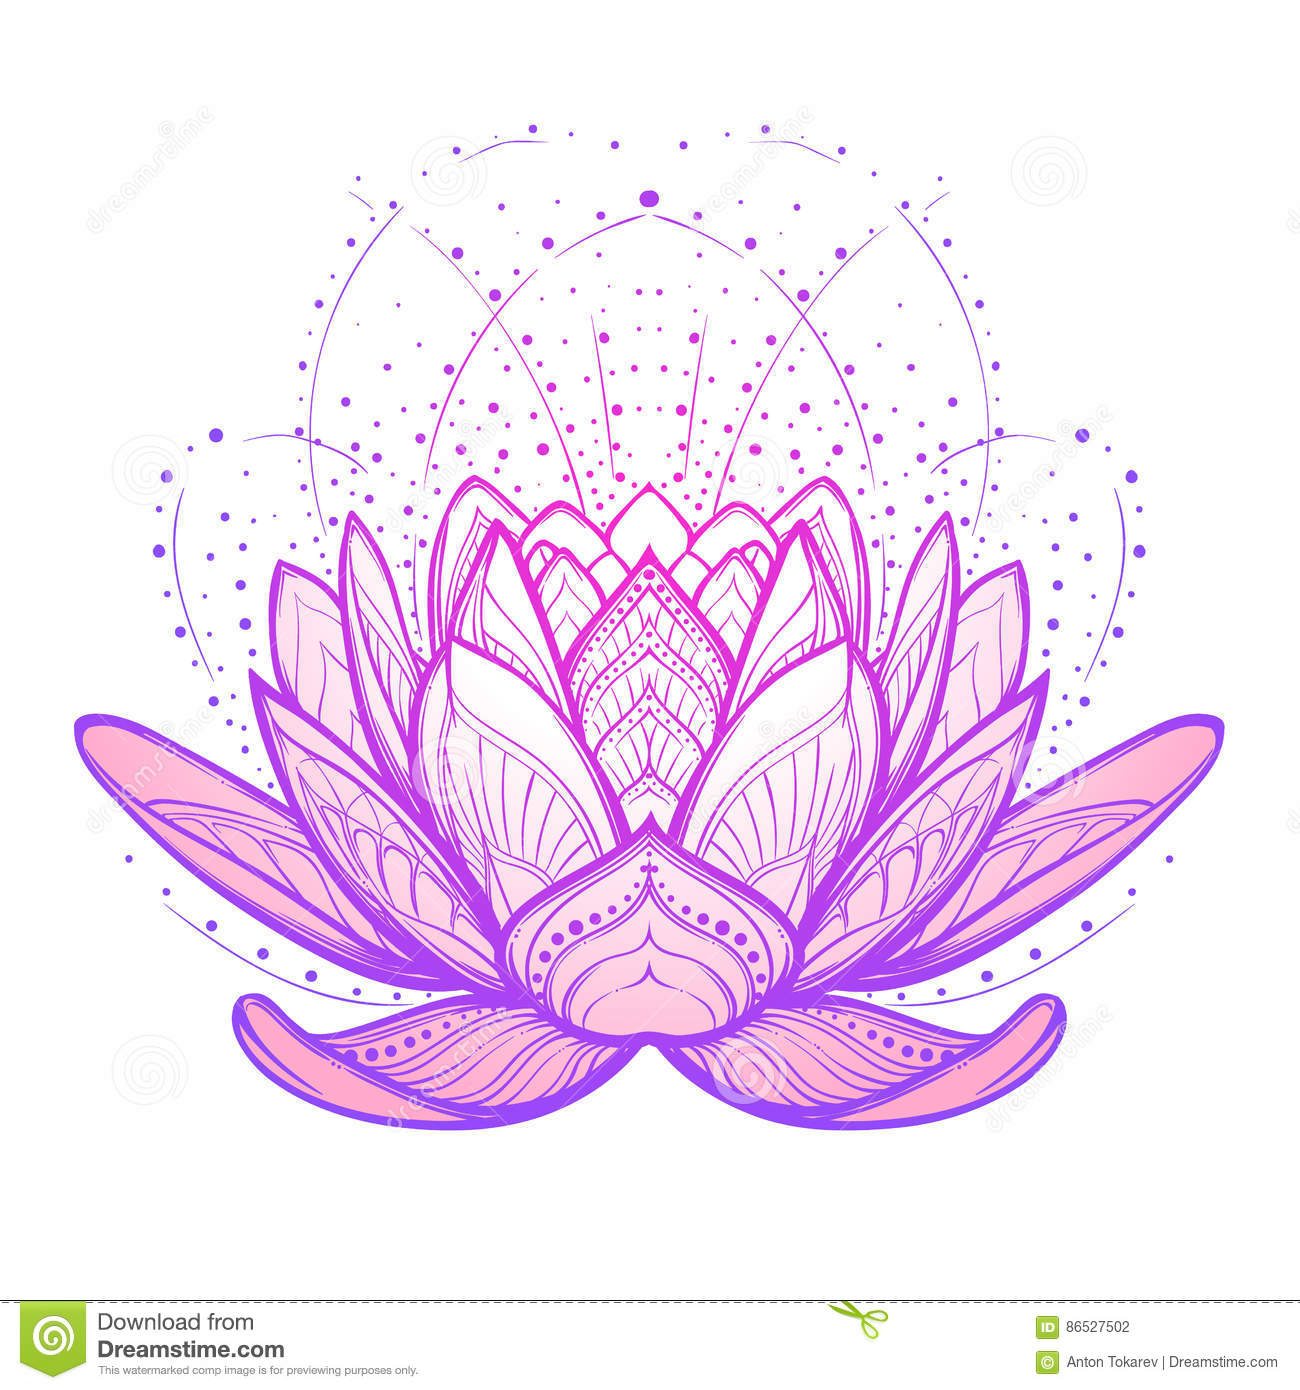 Lotus flower intricate stylized linear drawing on white background download comp mightylinksfo